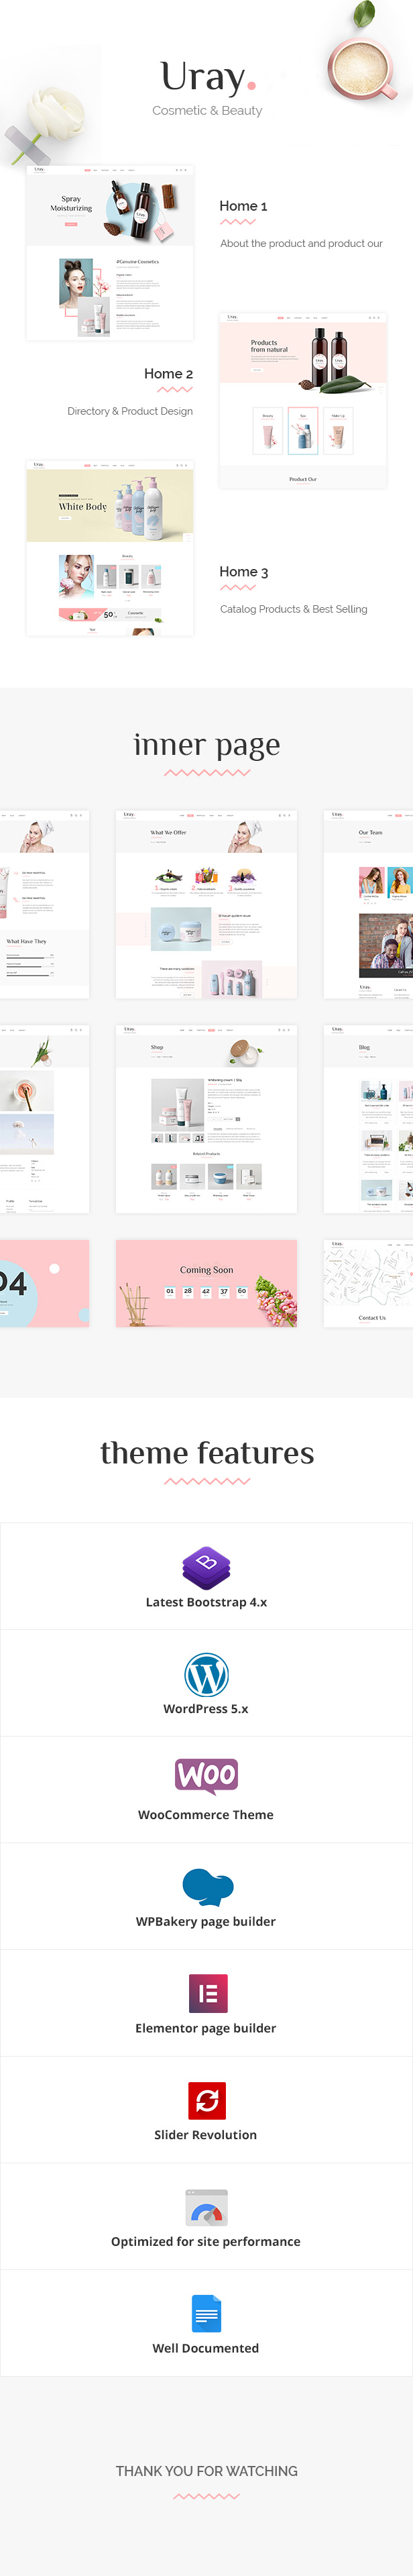 Uray - Cosmetic & Beauty Shop Thème WordPress WooCommerce - 1